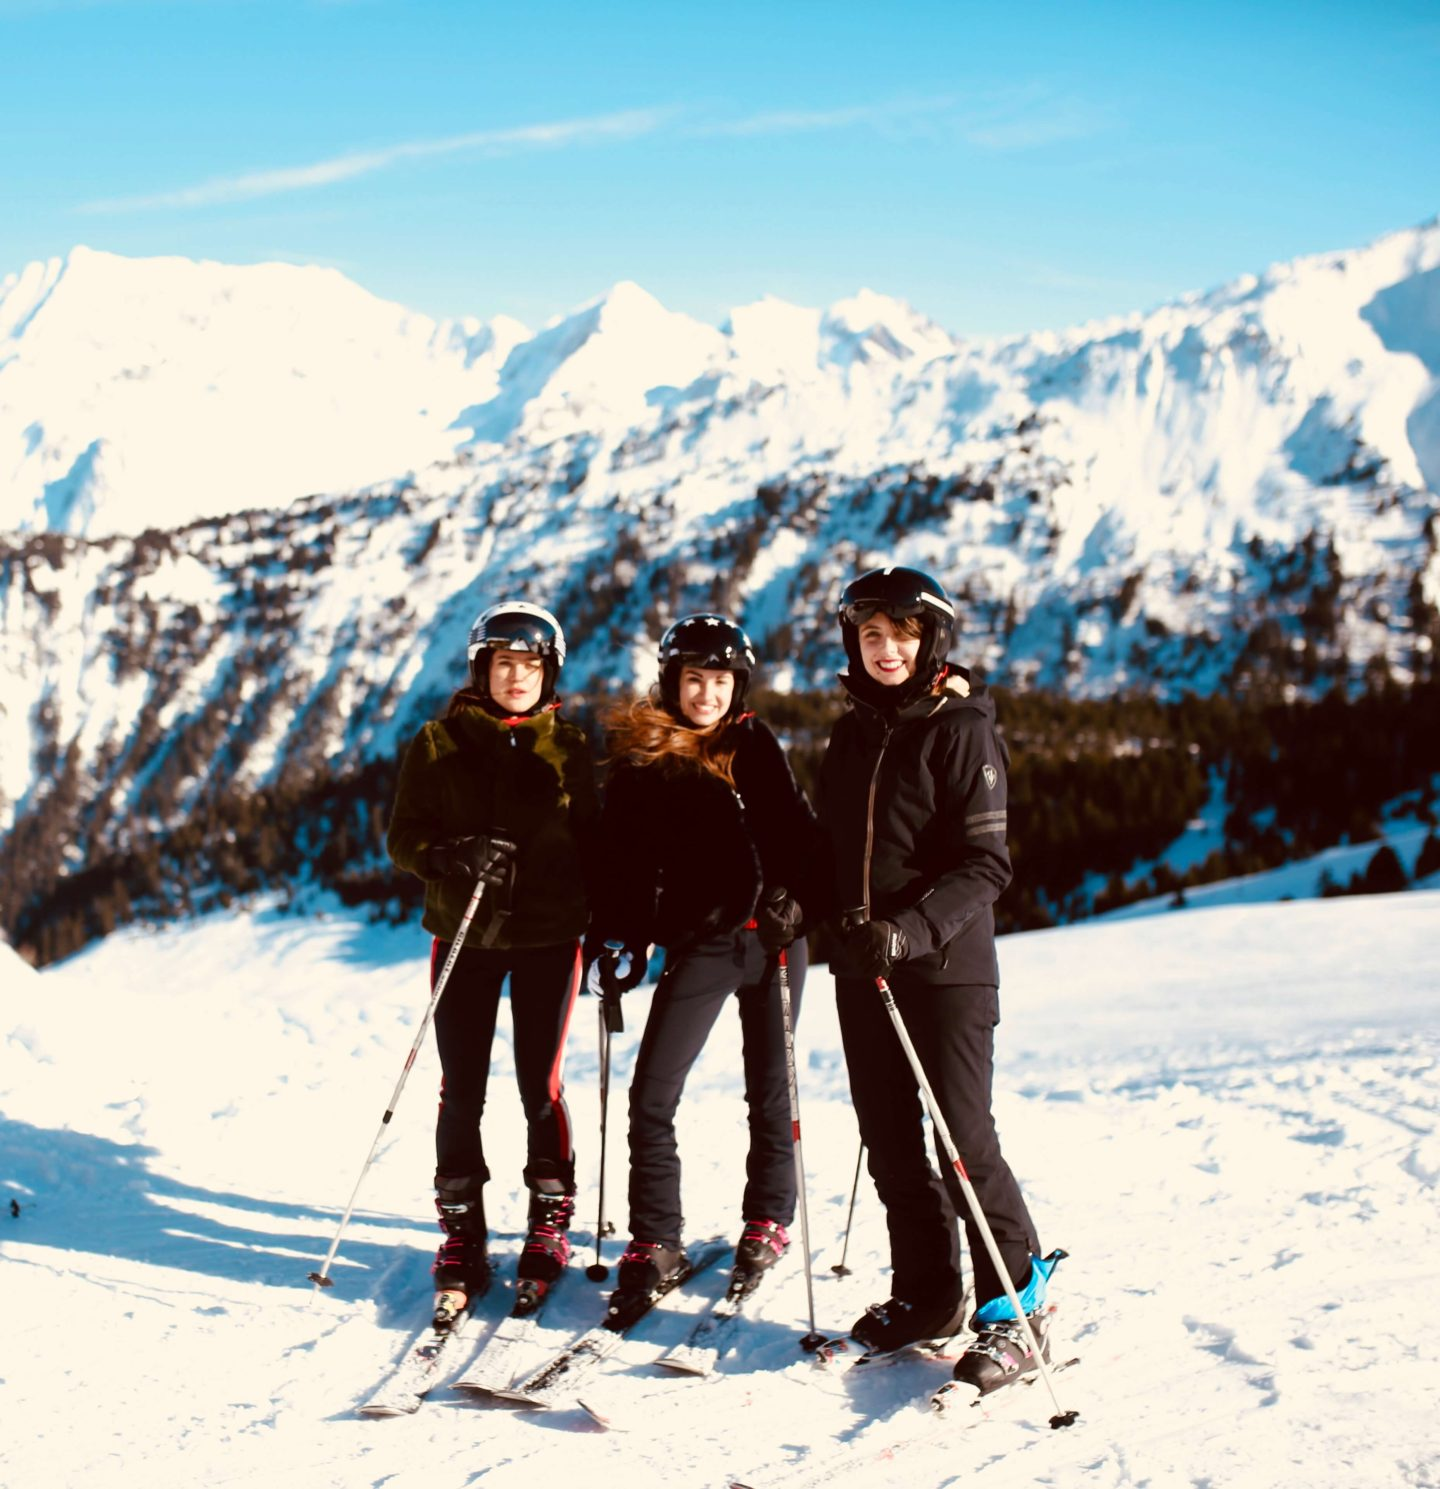 Courchevel voyage blog Way2Up L'atelier d'al blog mode lifestyle travel Alpes